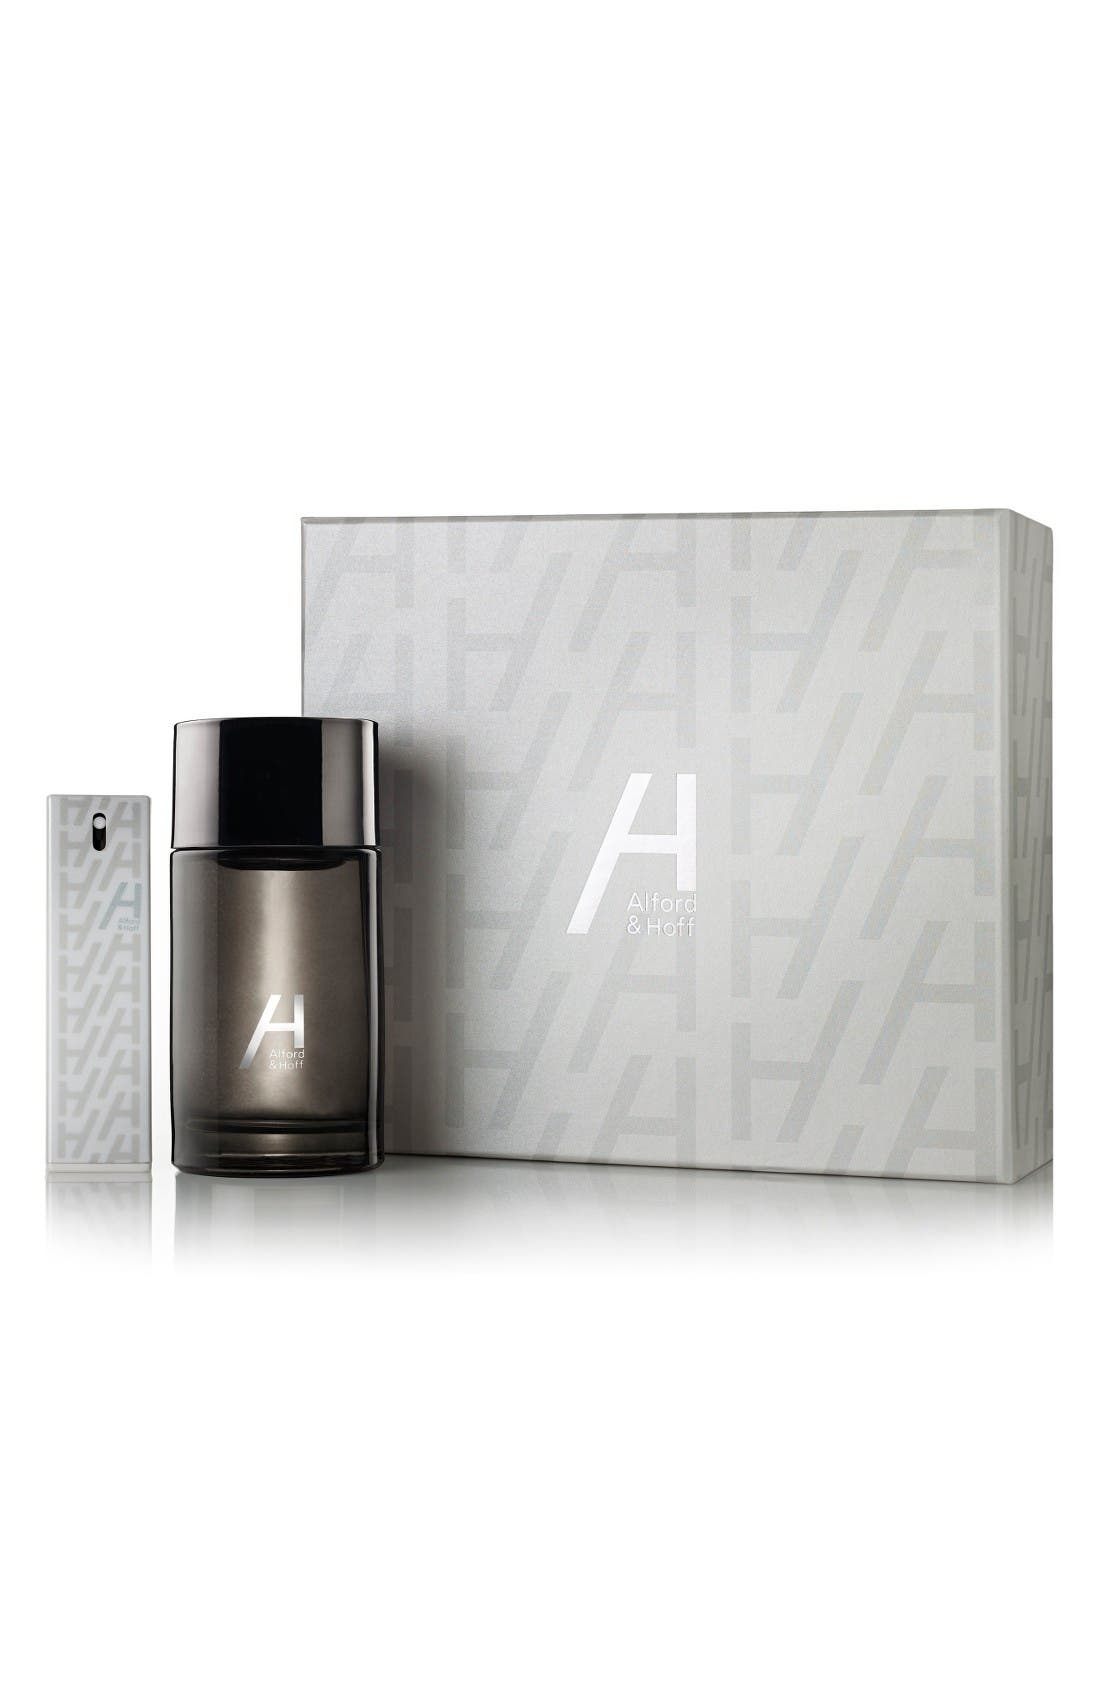 ALFORD & HOFF No. 3 Gift Set (Limited Edition) ($132 Value)